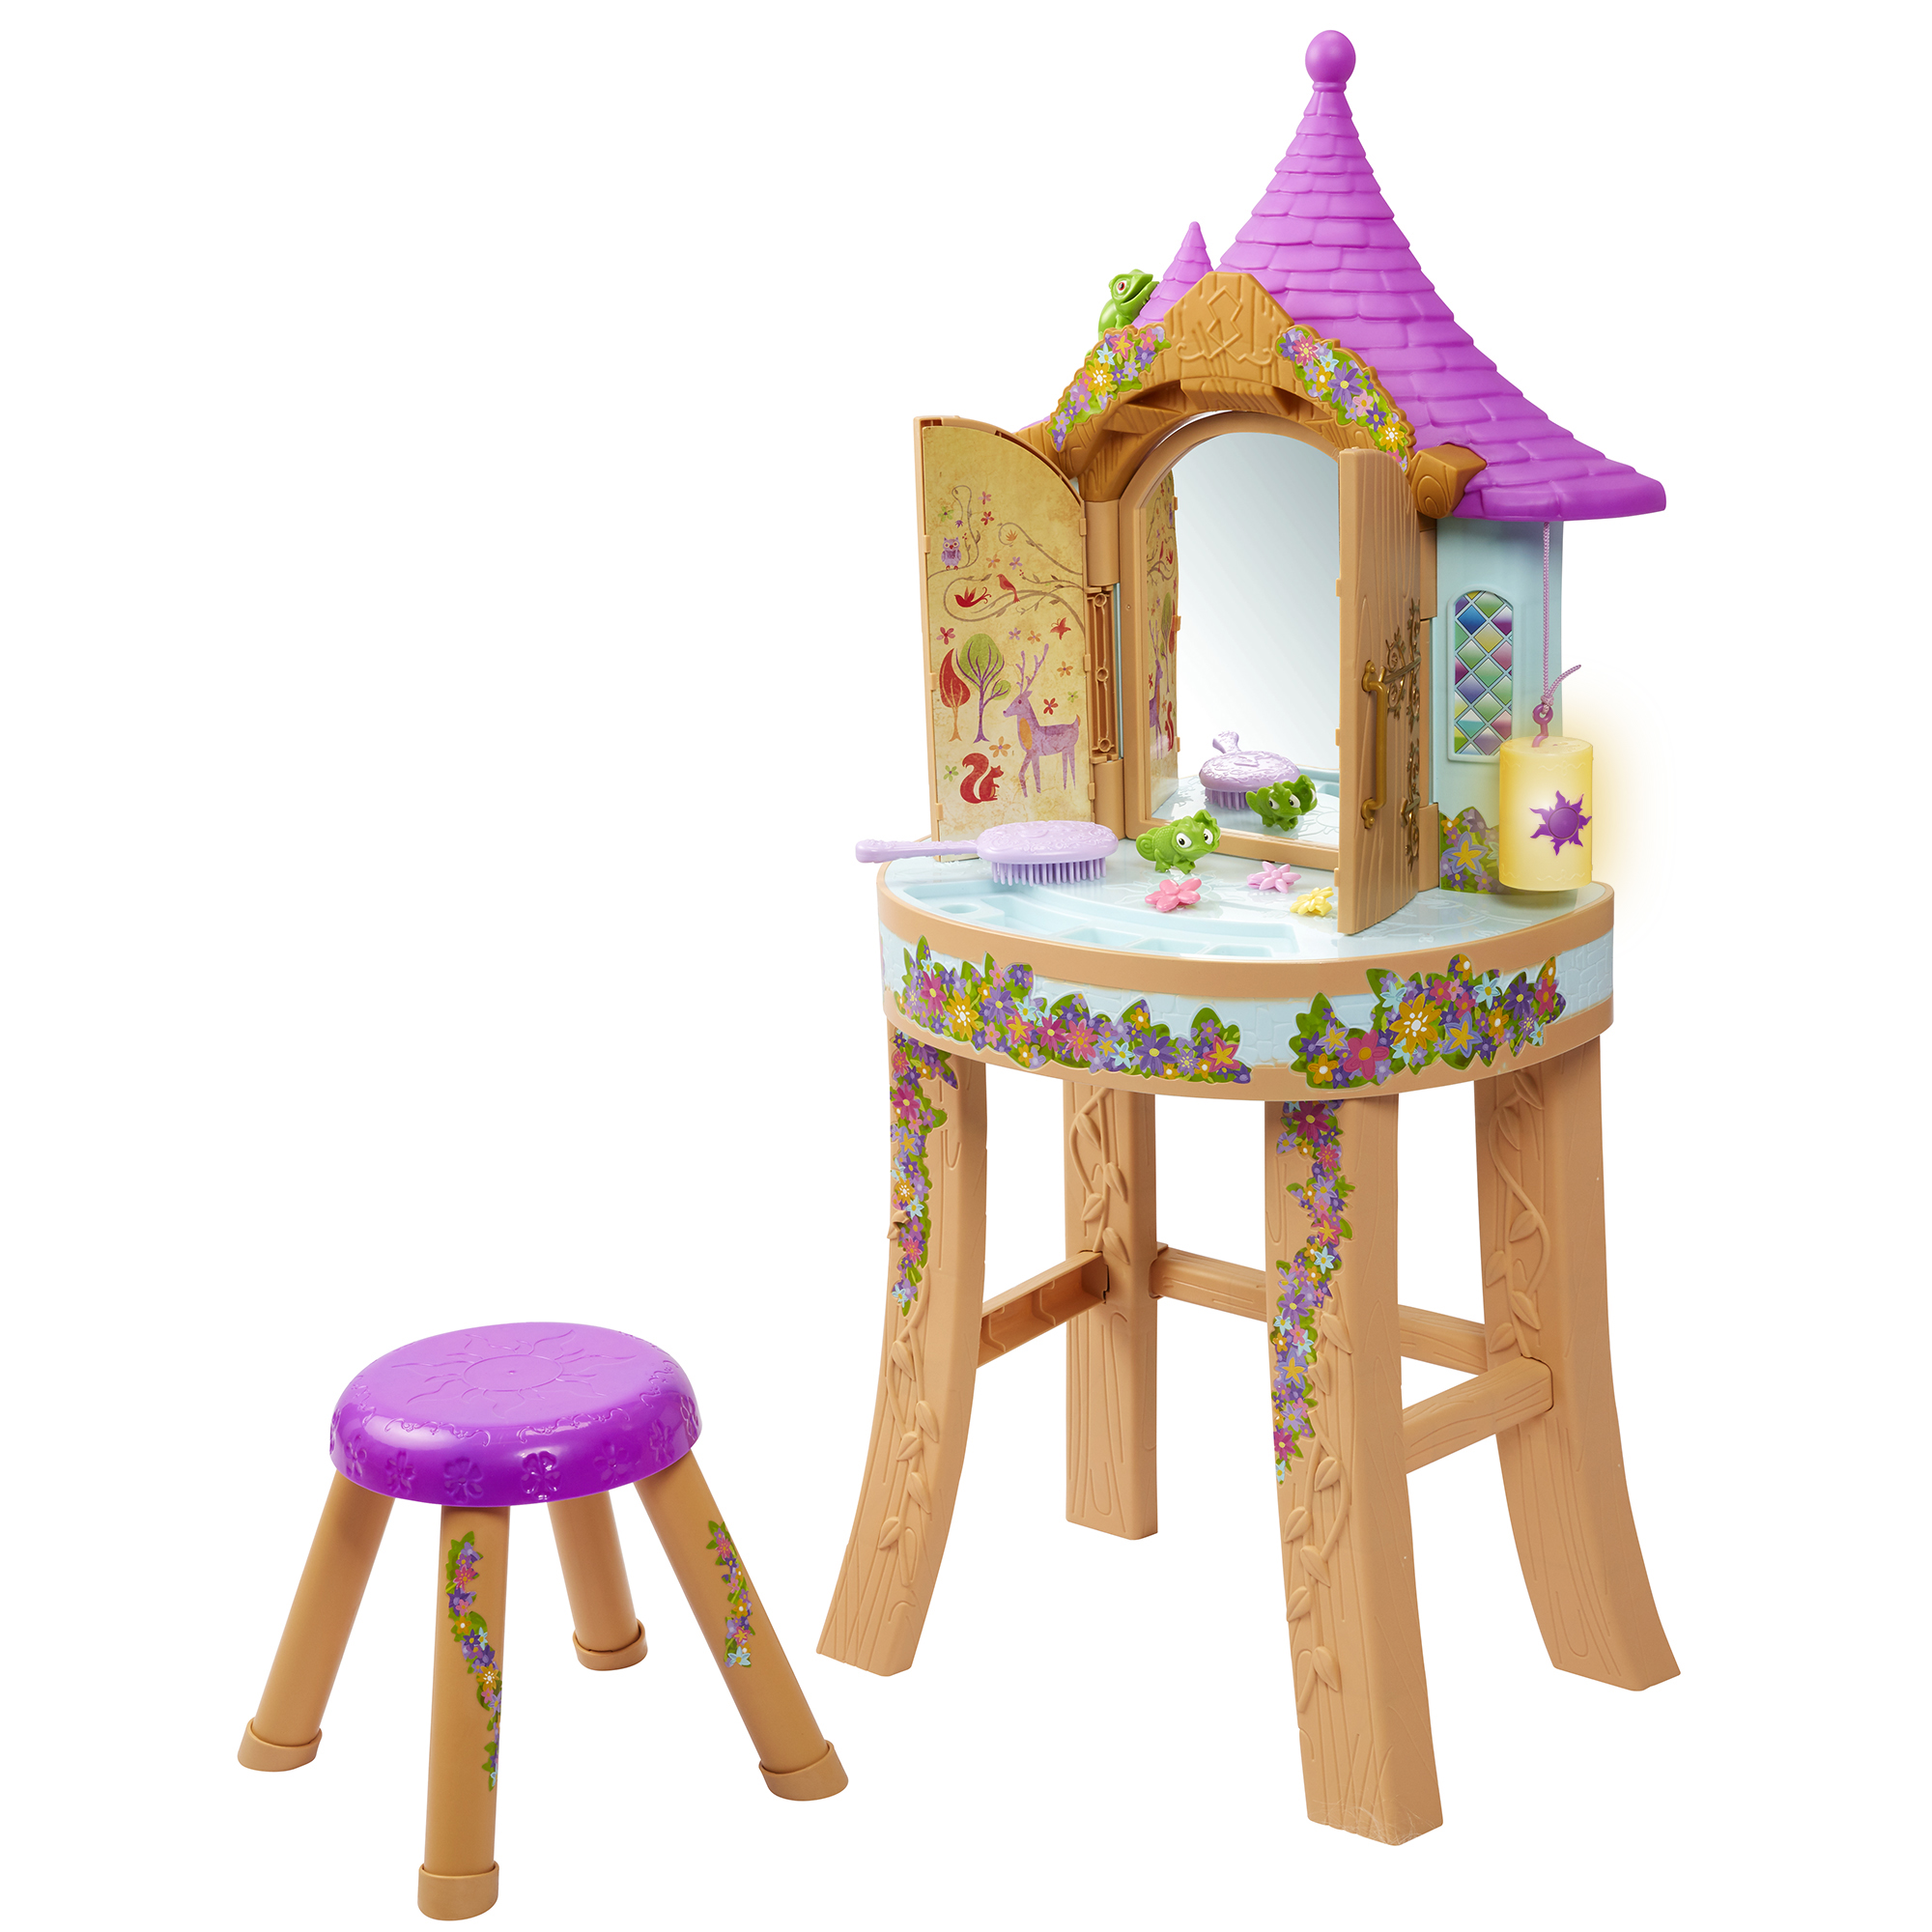 Rapunzel Tower Vanity Disney Princess